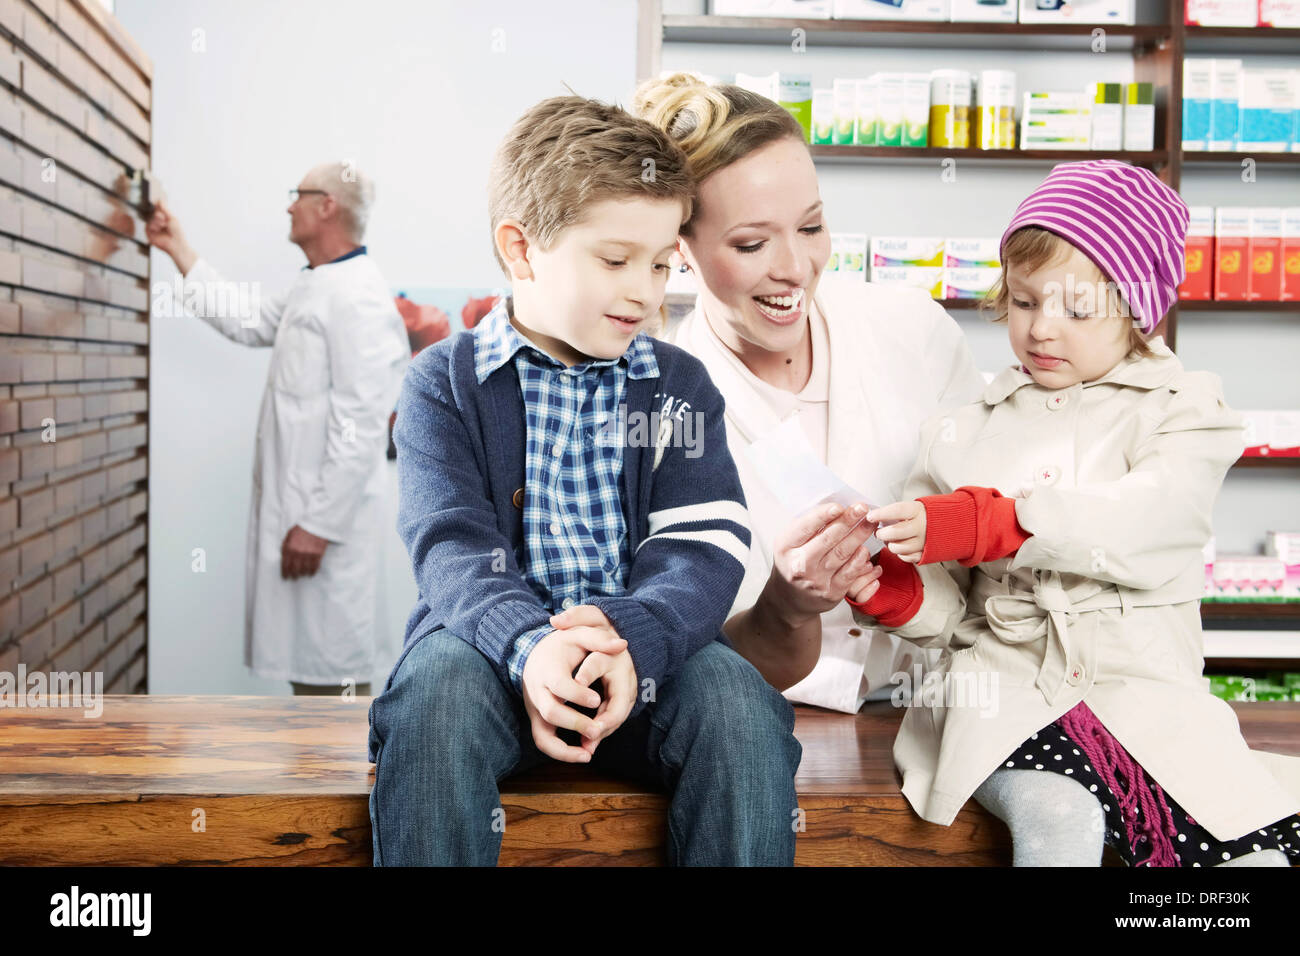 Female Pharmacist Talking With Children, Munich, Bavaria, Germany - Stock Image